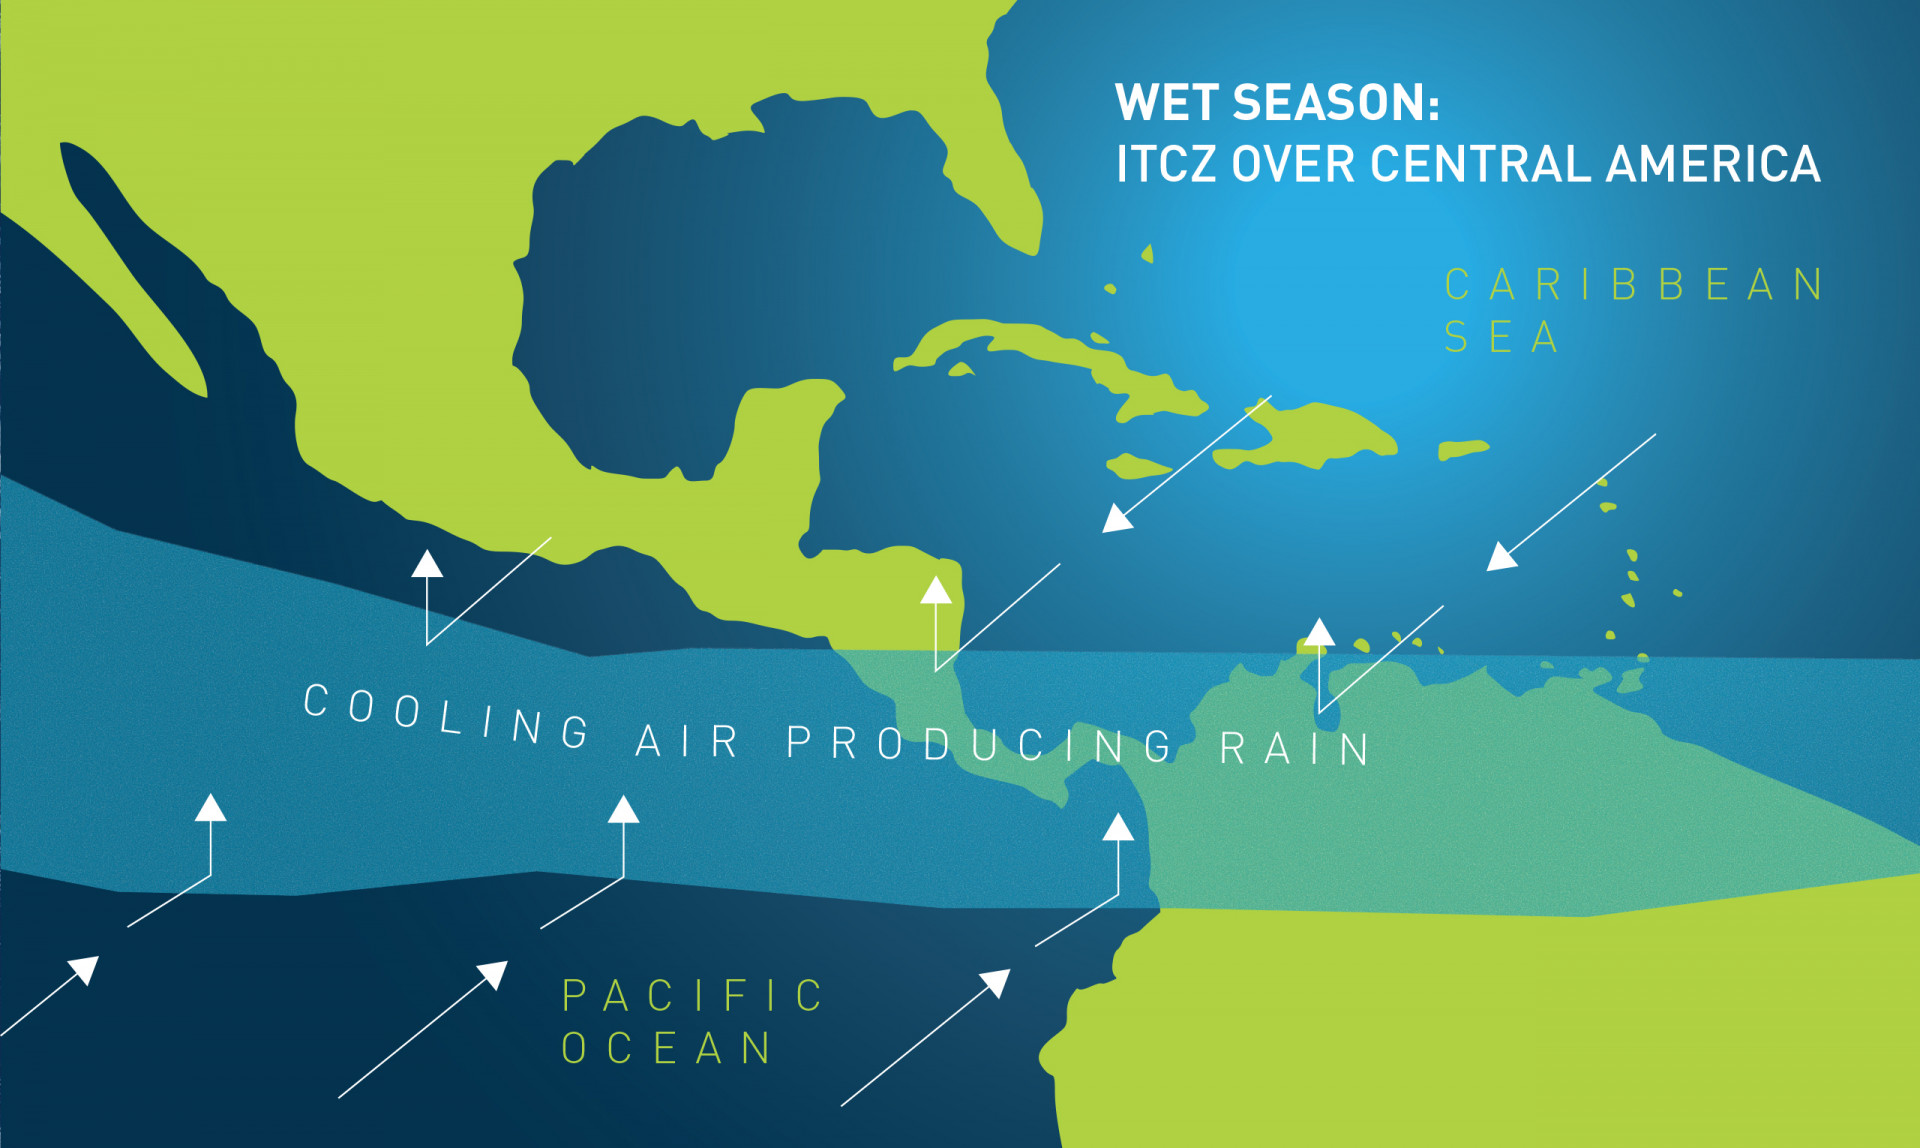 Between May and November, the ITCZ's line of thunderstorms is directly over Panama, creating the wet season